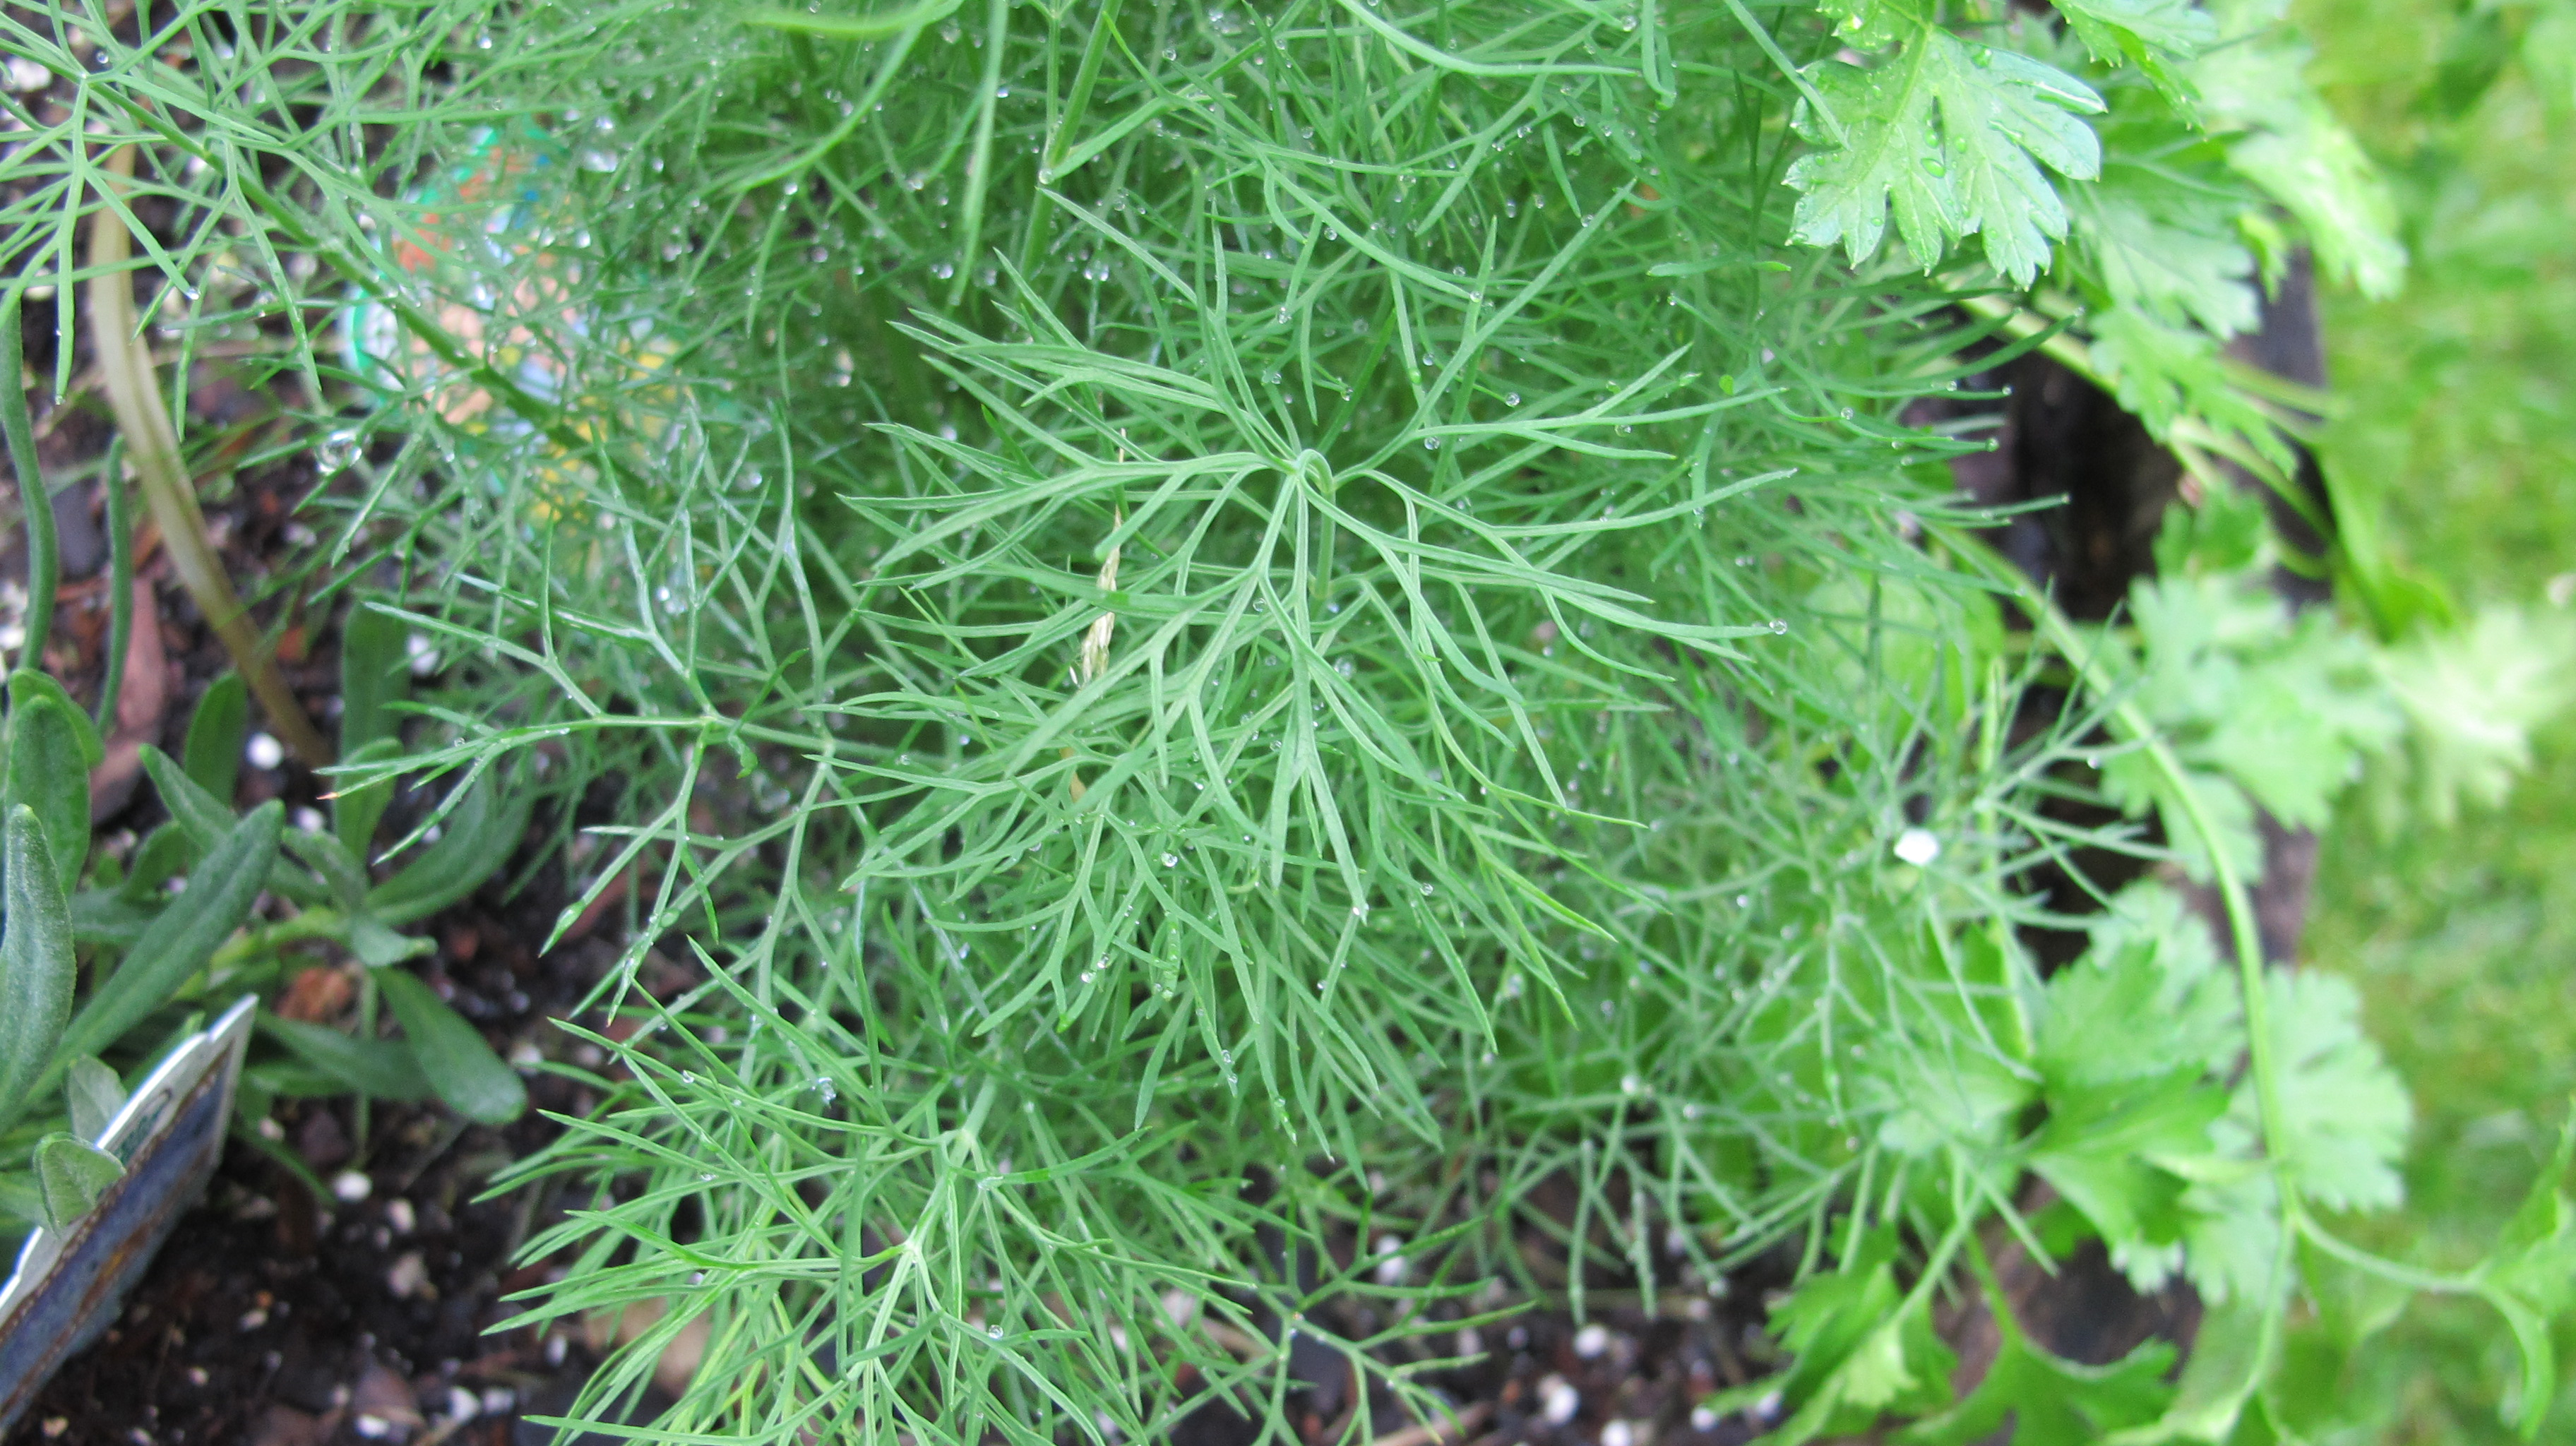 Fresh dill growing in the backyard garden.